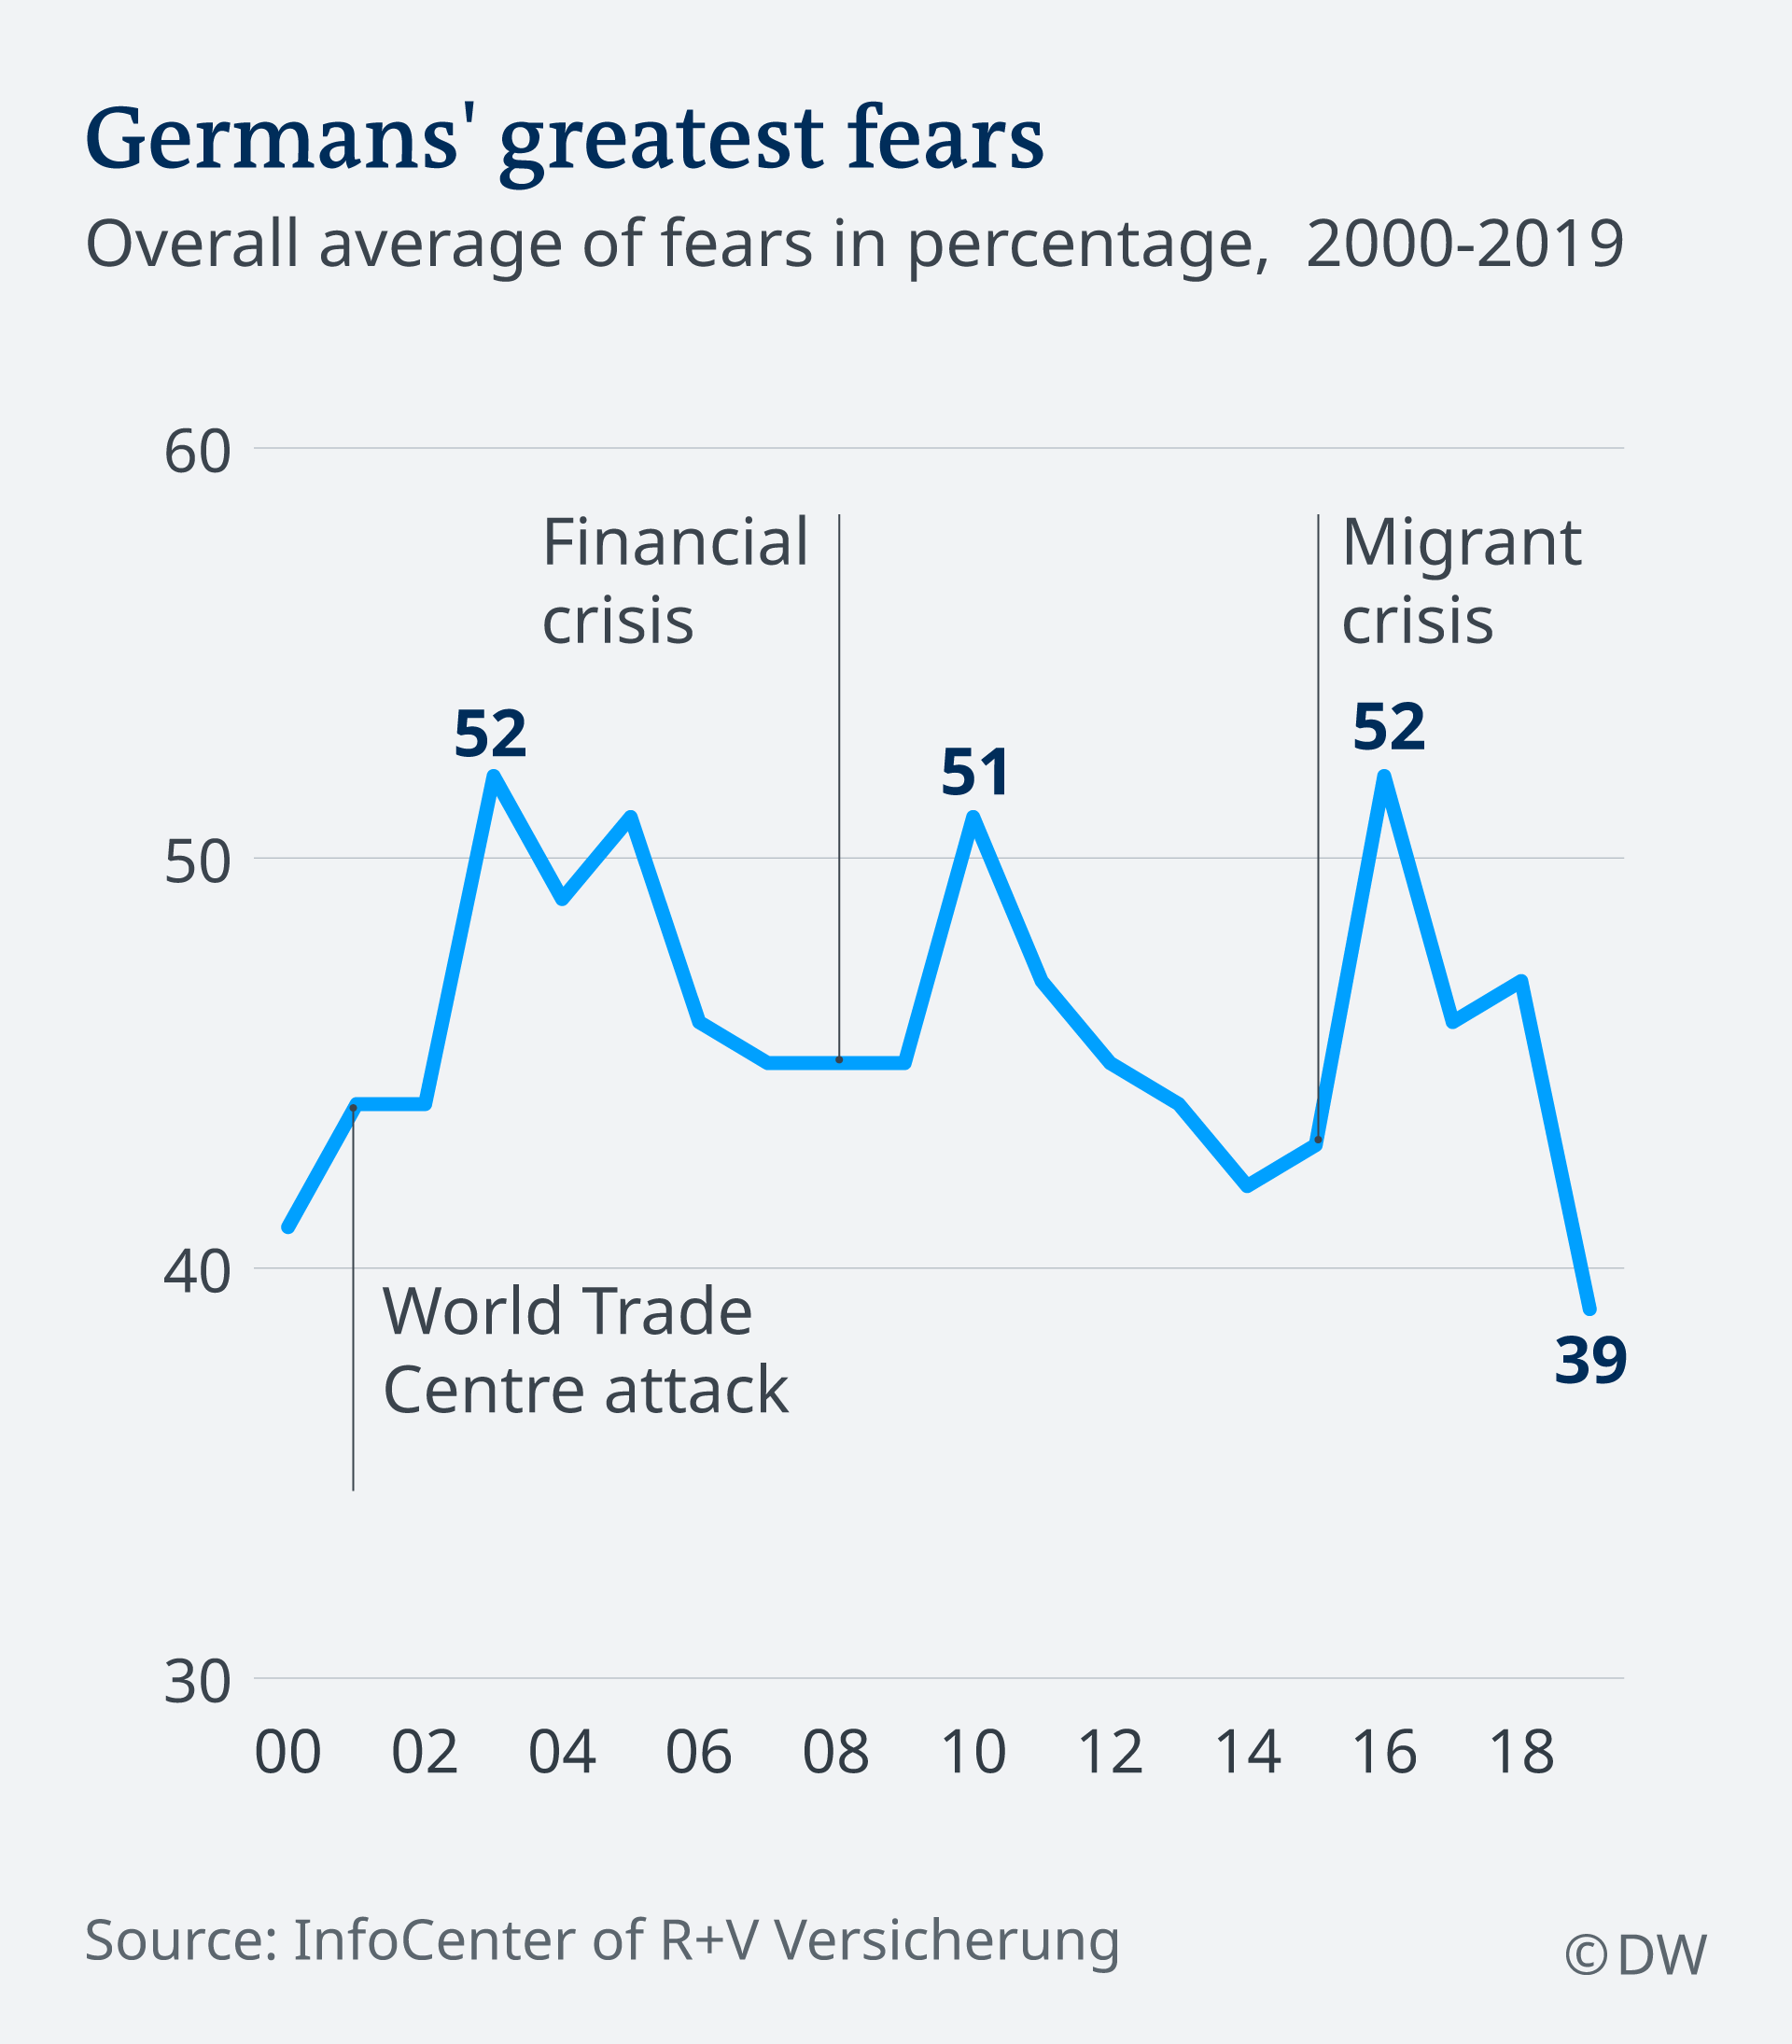 Graph showing levels of fear of Germans relating to events from 2000 to 2019